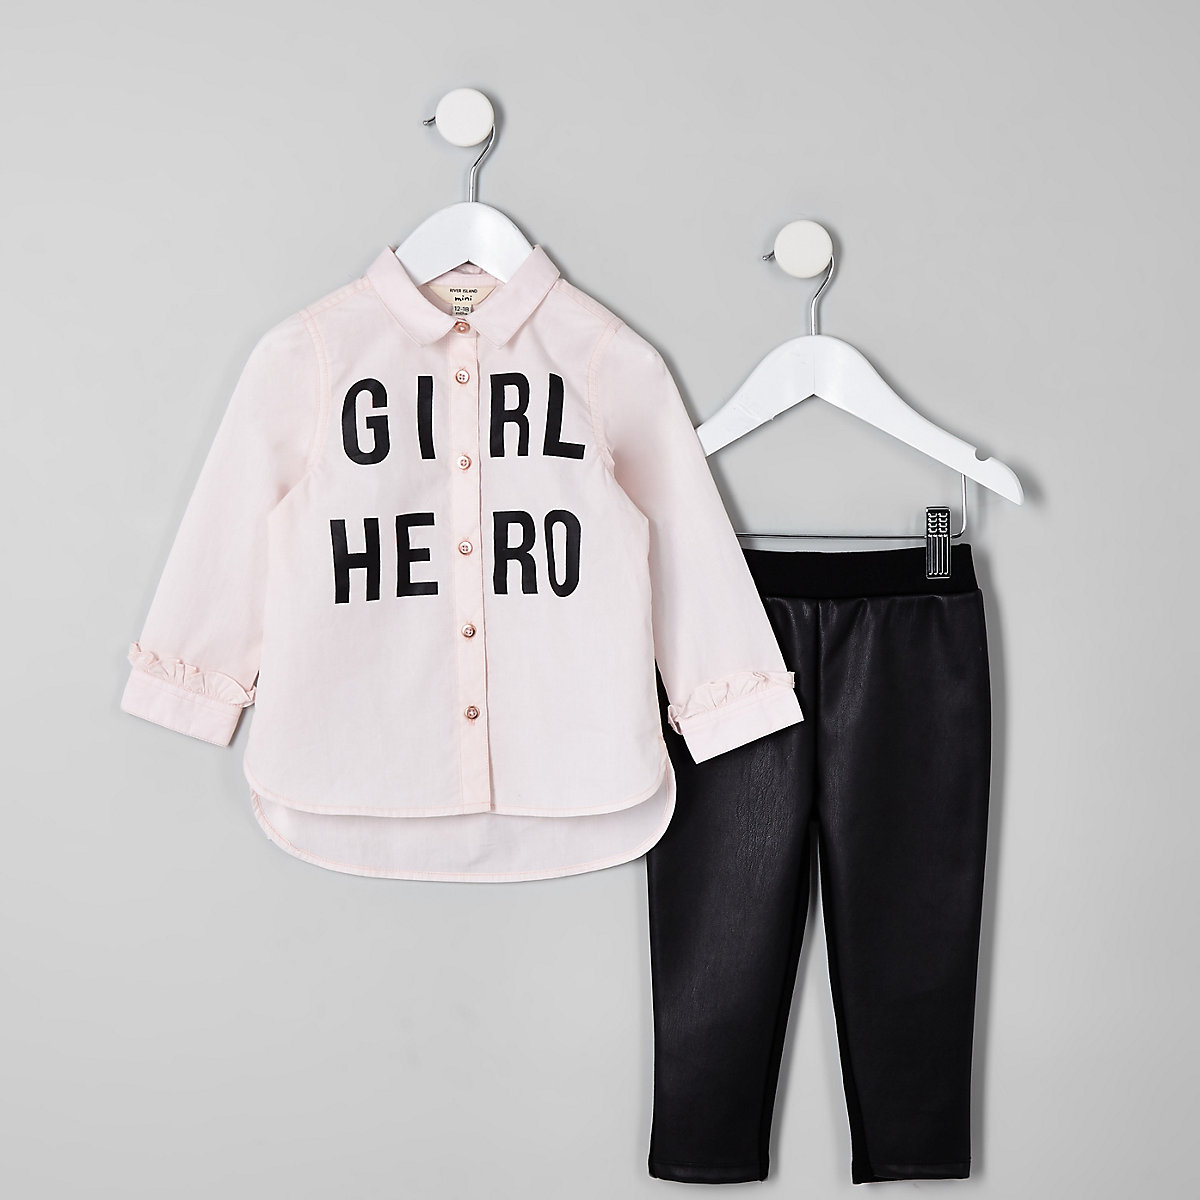 Mini girls pink 'Girl hero' shirt outfit